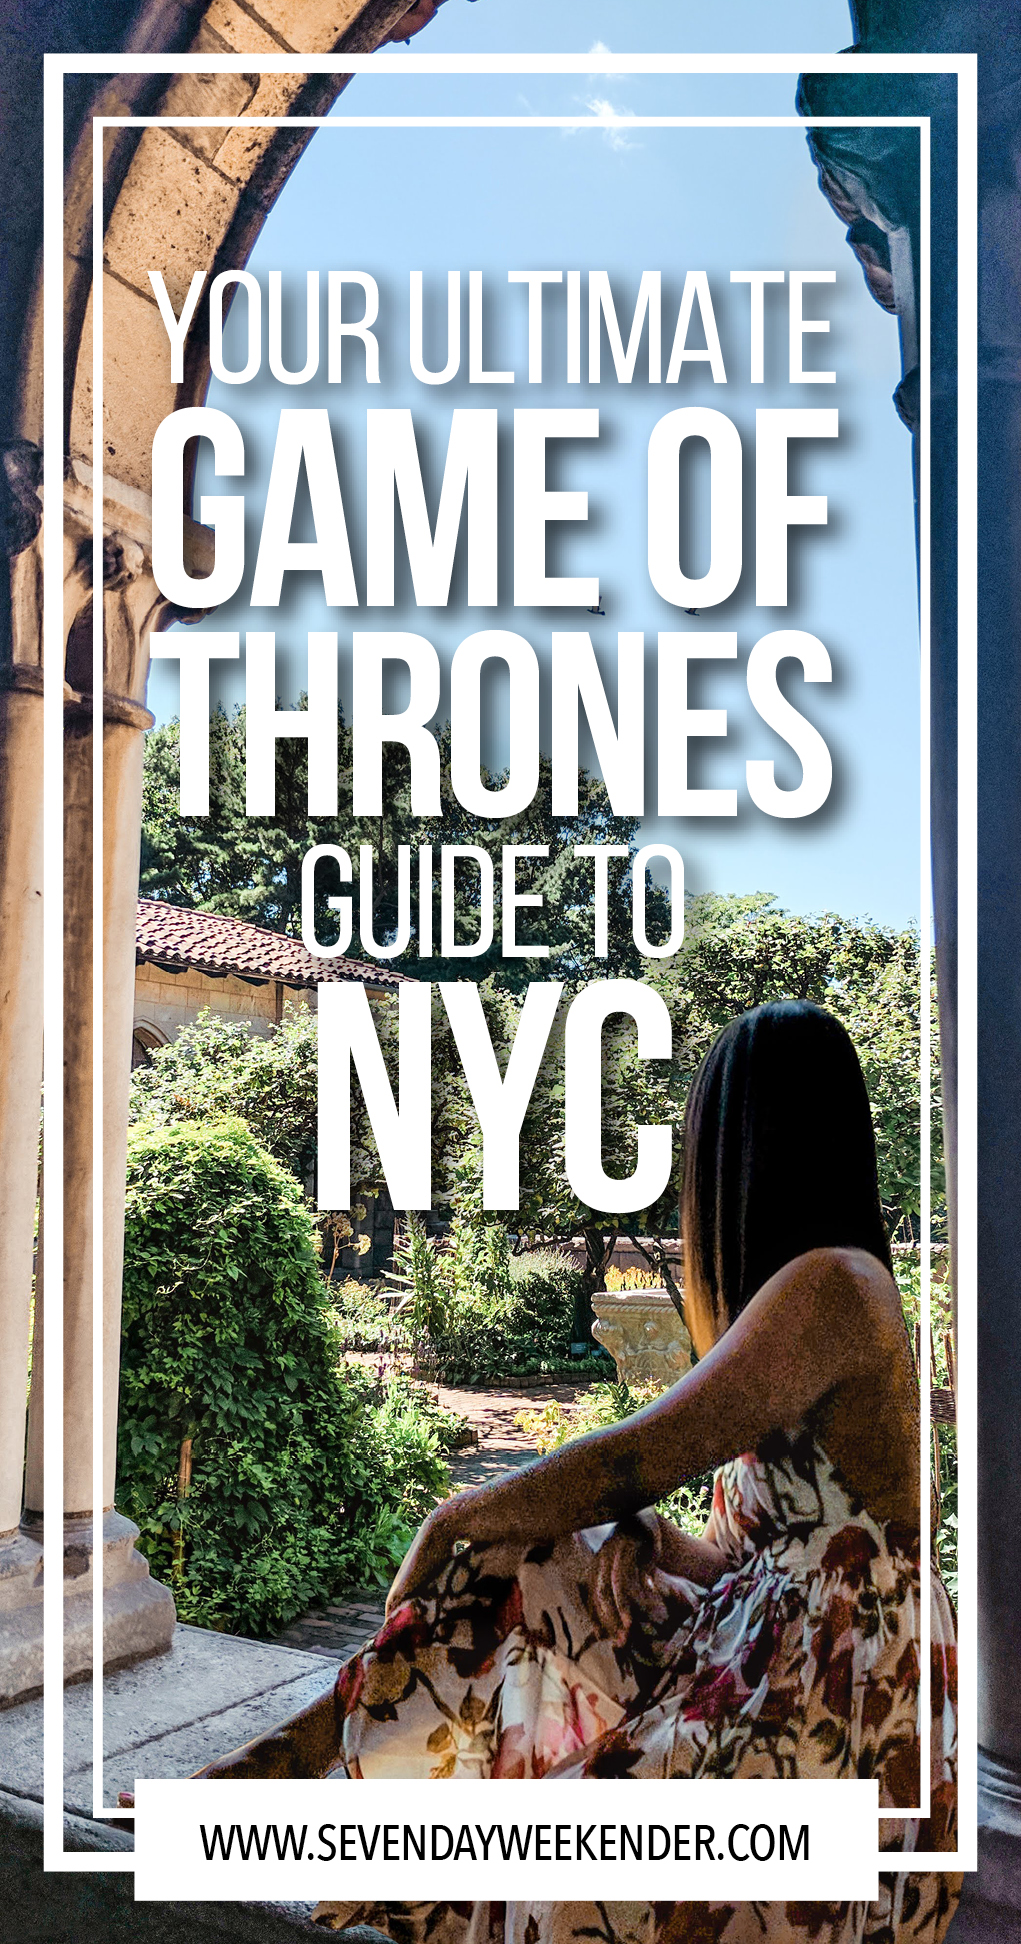 The Ultimate Game of Thrones Guide to NYC